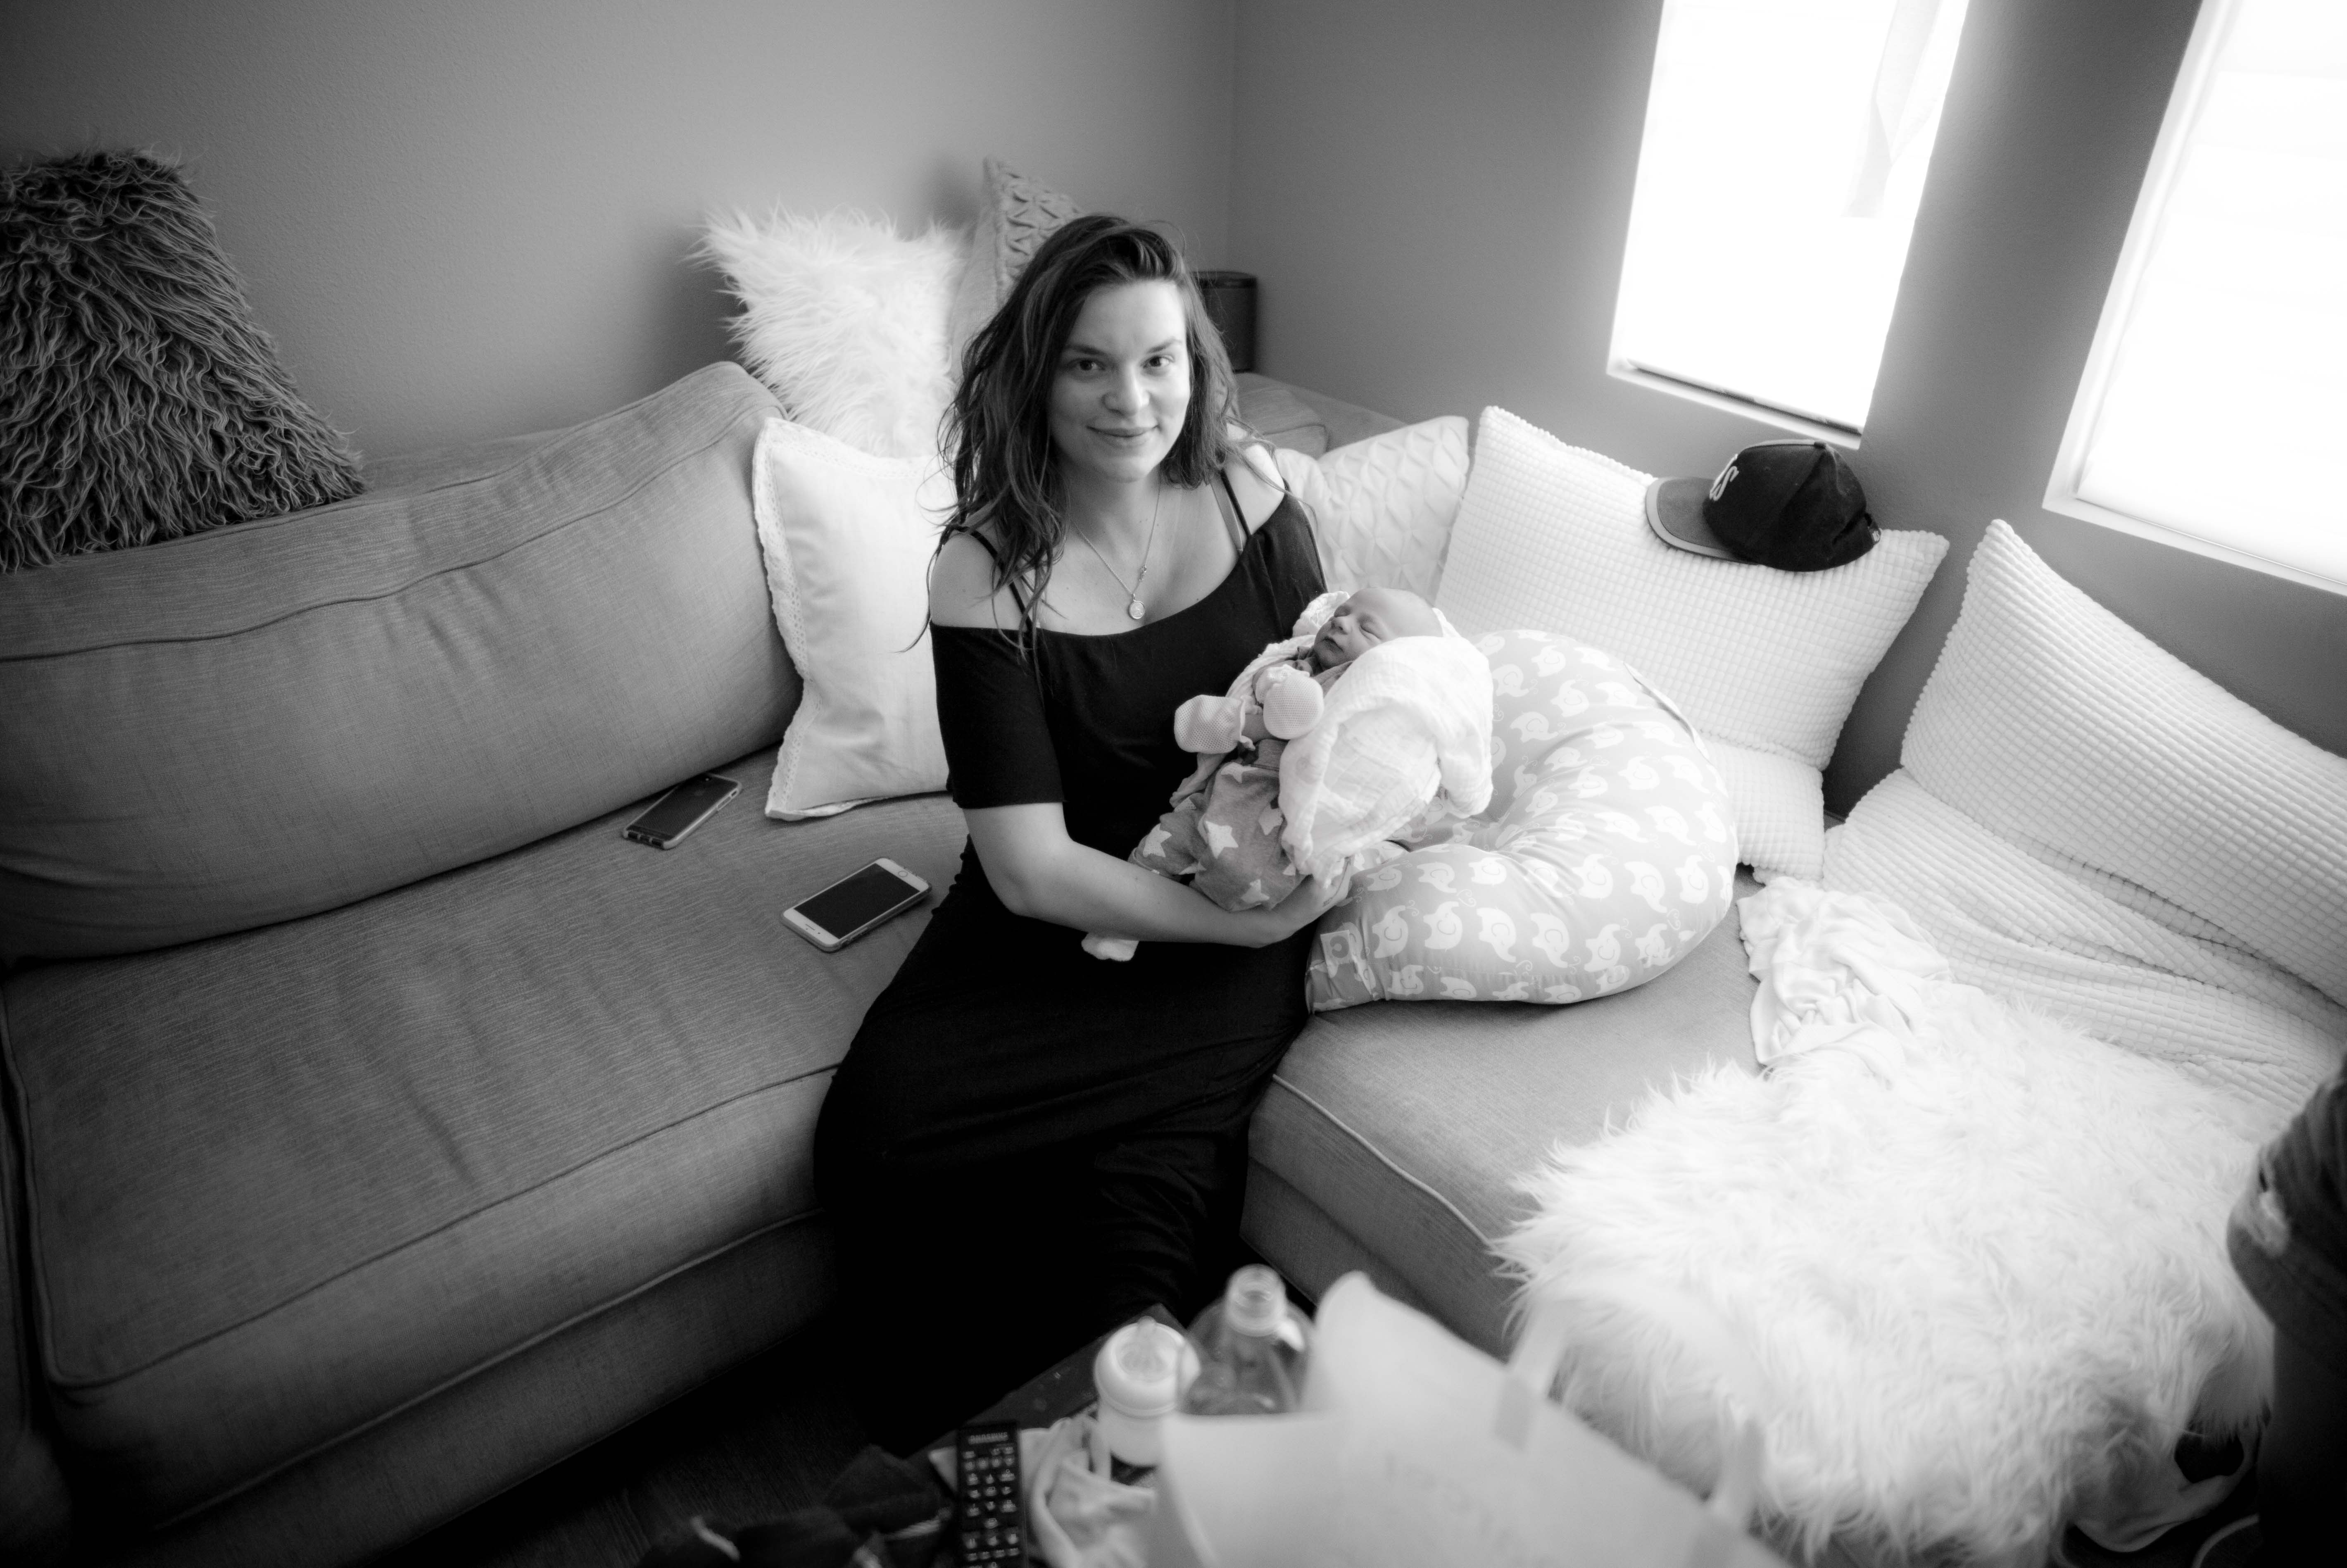 Julie Barzman, Lifestyle Blog, About The Mommy Codes, Contact The Mommy Codes, Affiliate Links, Candid Motherhood, Mom Blogger, Motherhood Blog, Mom Blogger Los Angeles, Los Angeles Mom Los Angeles Mom Blog, Los Angeles Mom Blogger, Motherhood Coaching Coaching LA Motherhood Coaching, Moms Blog, LA Mom Blog, Mommy Blogger, Mom Life, Parenting, Parenting Tips, Los Angeles Parents